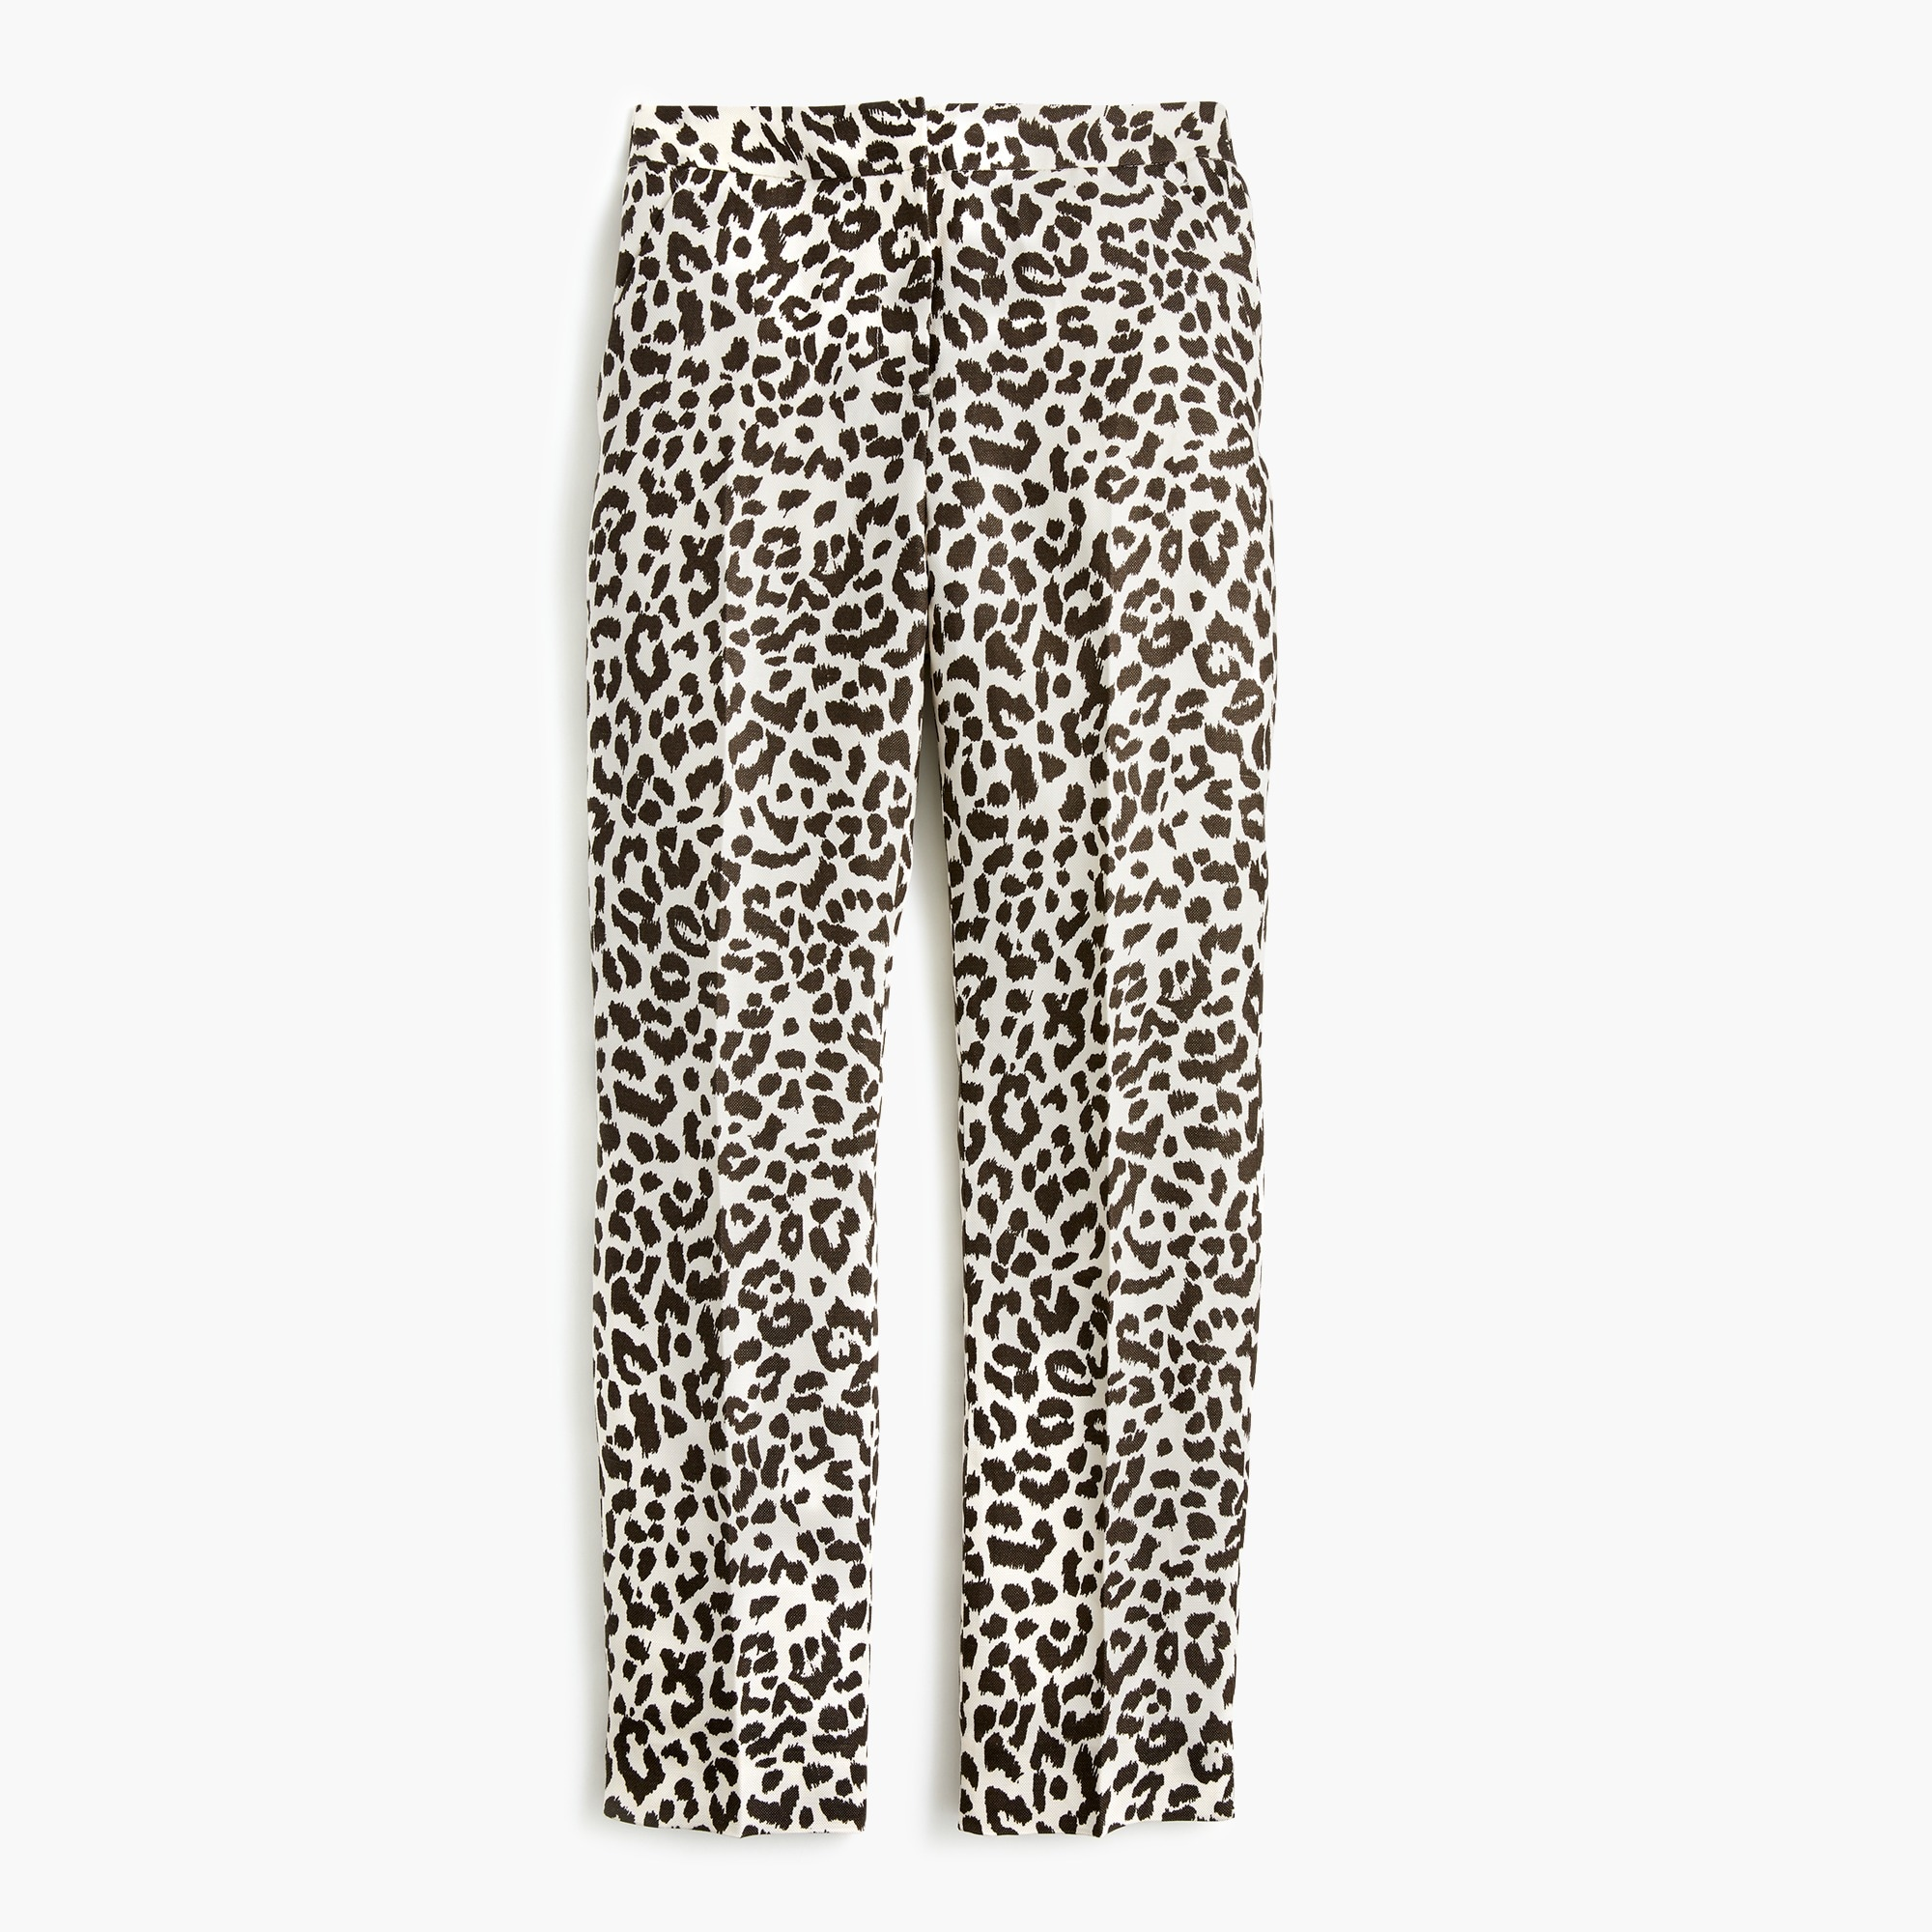 Image 2 for Easy pant in leopard